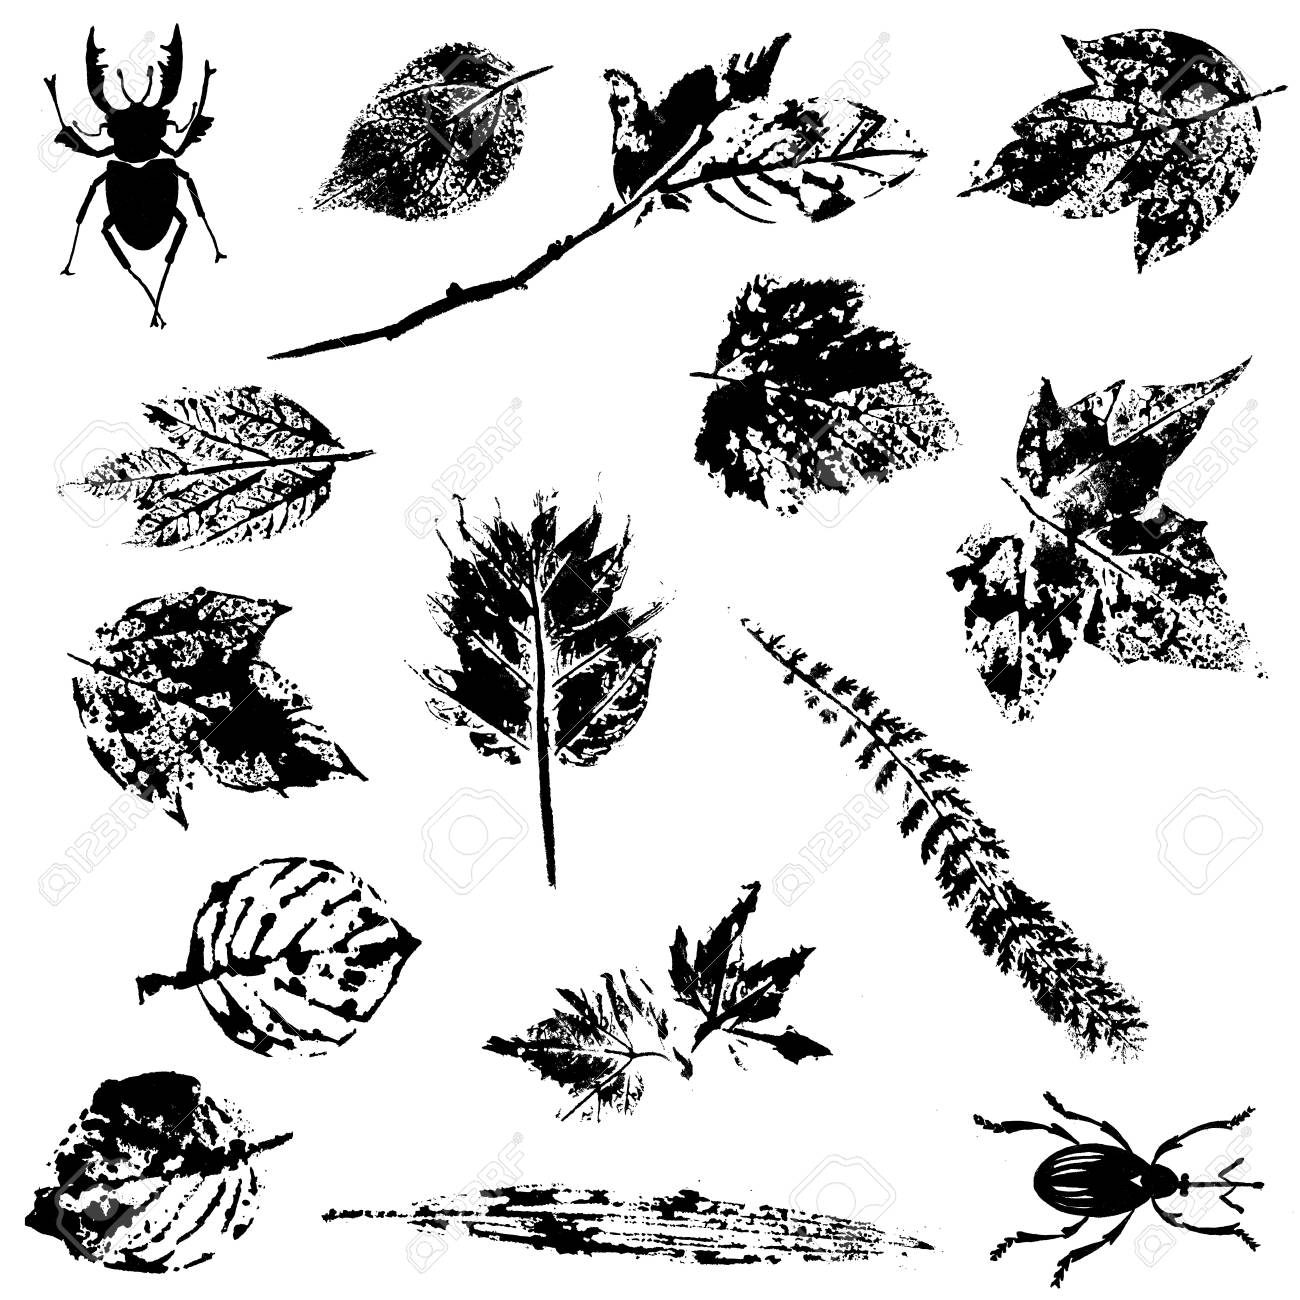 Set of Nature Grunge Elements Stock Vector - 19584485